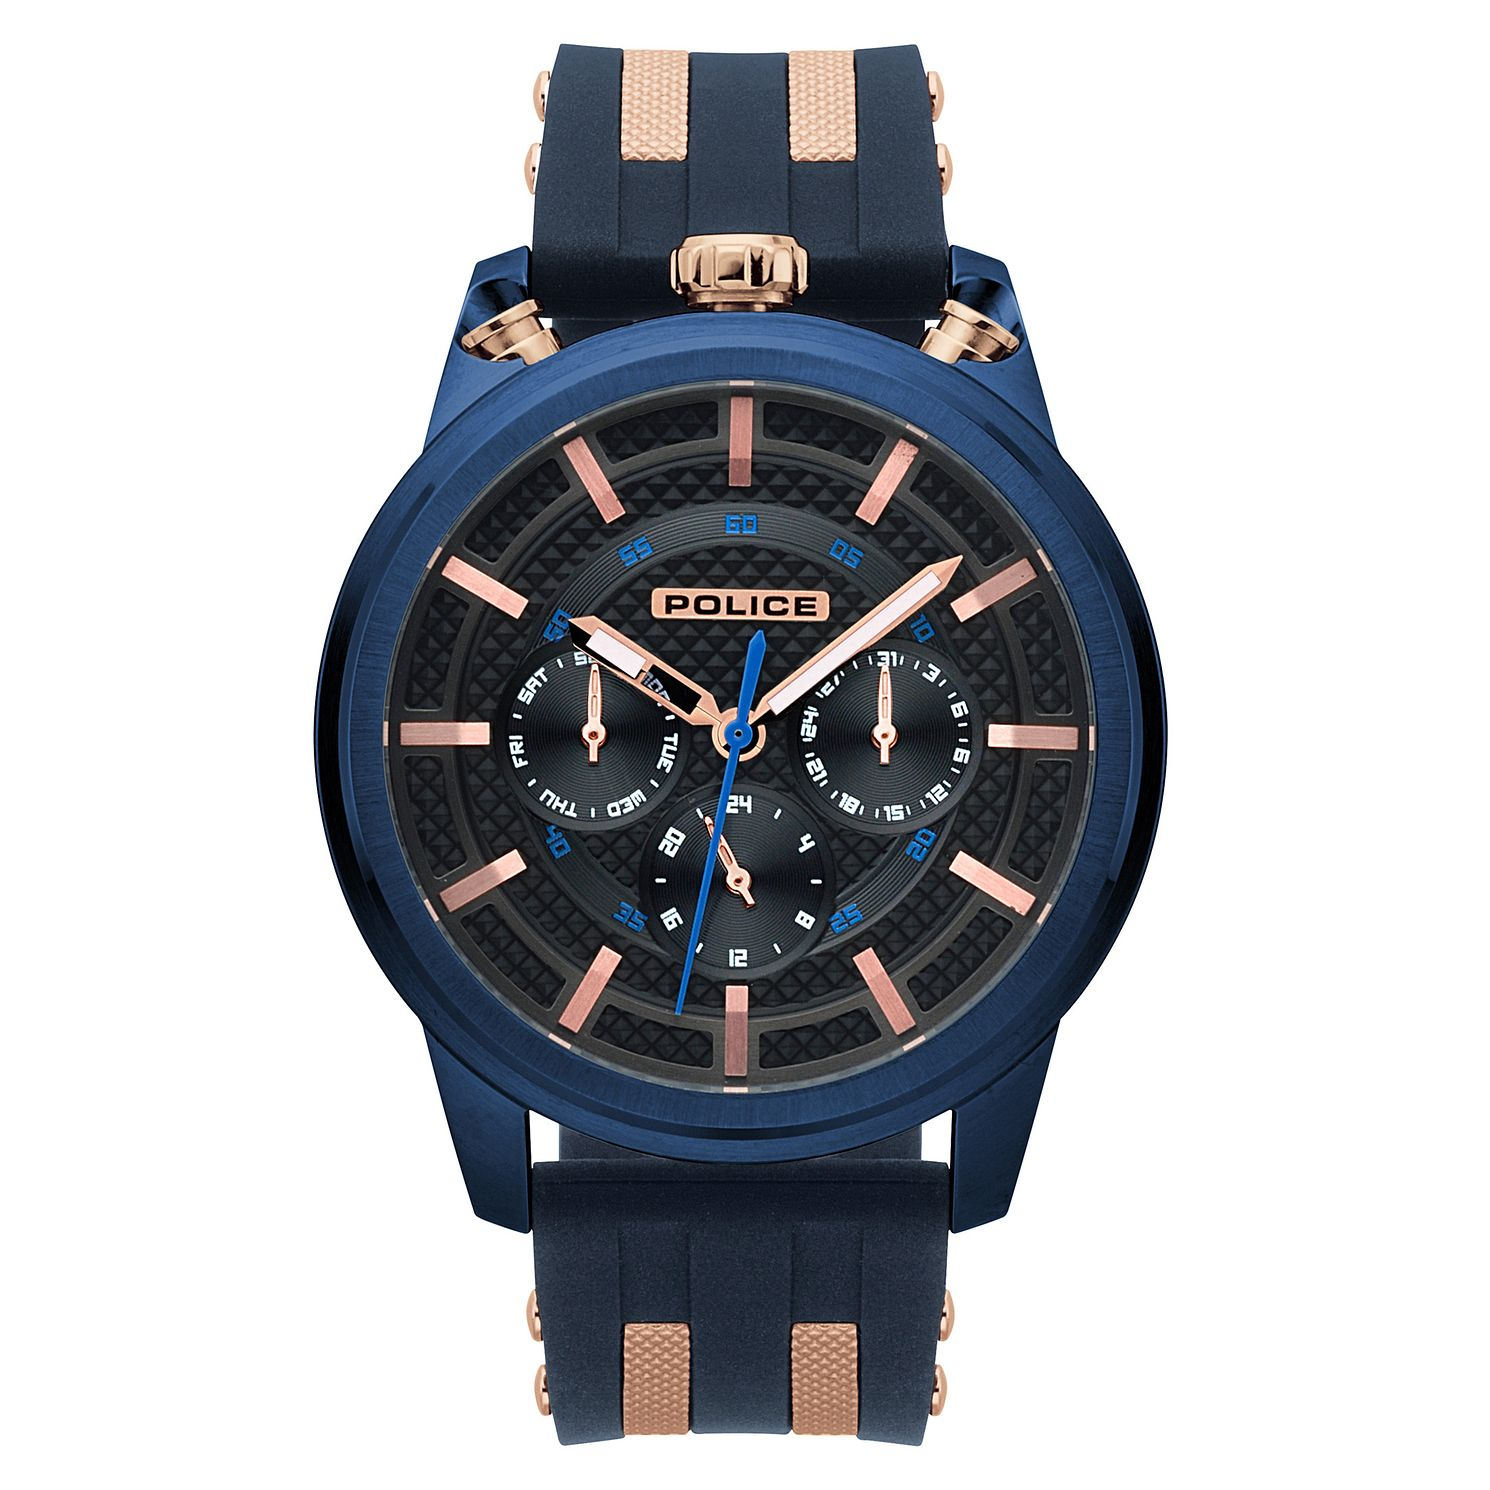 Police Men's Black Dial Blue Silicone Strap Watch - Product number 4730011